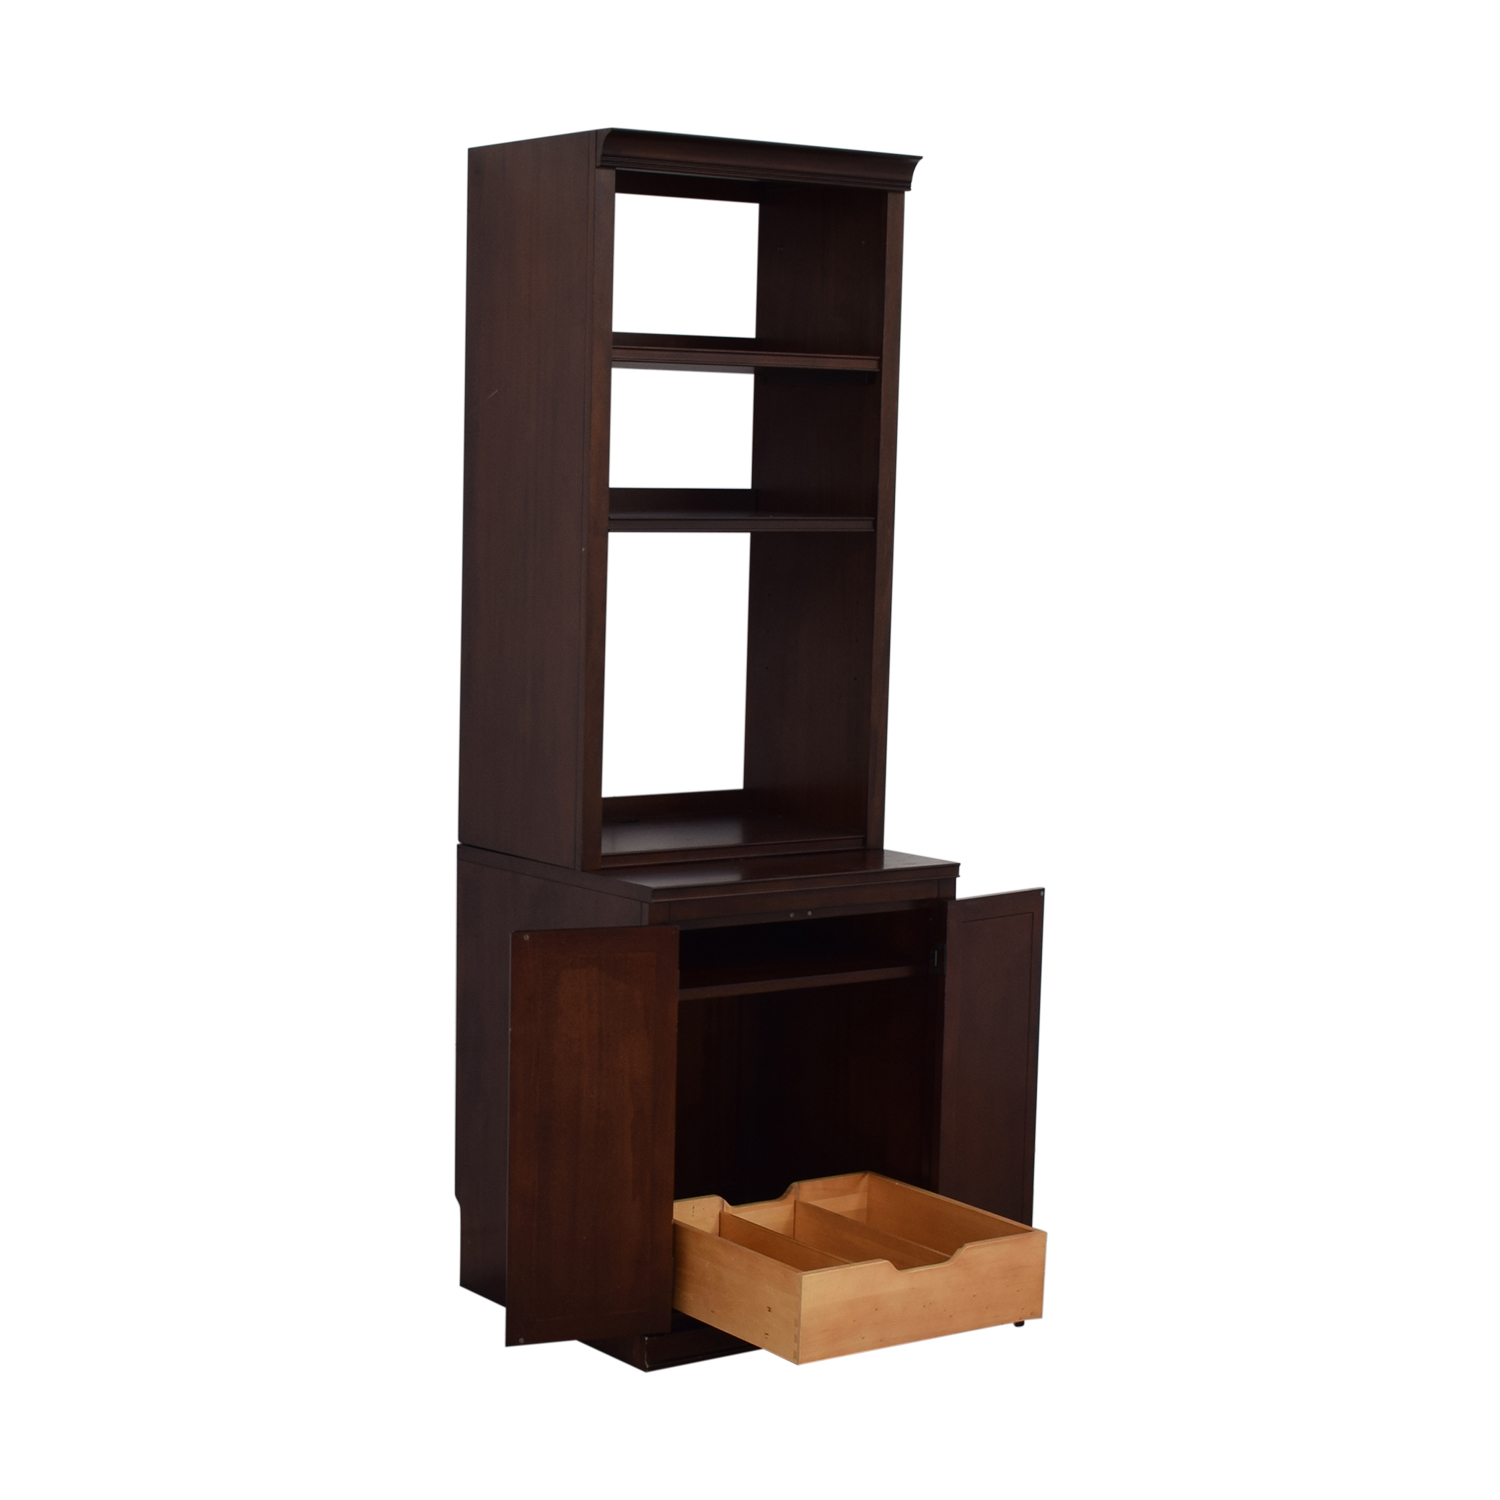 Pottery Barn Pottery Barn Bookcases with Storage Cabinet dimensions